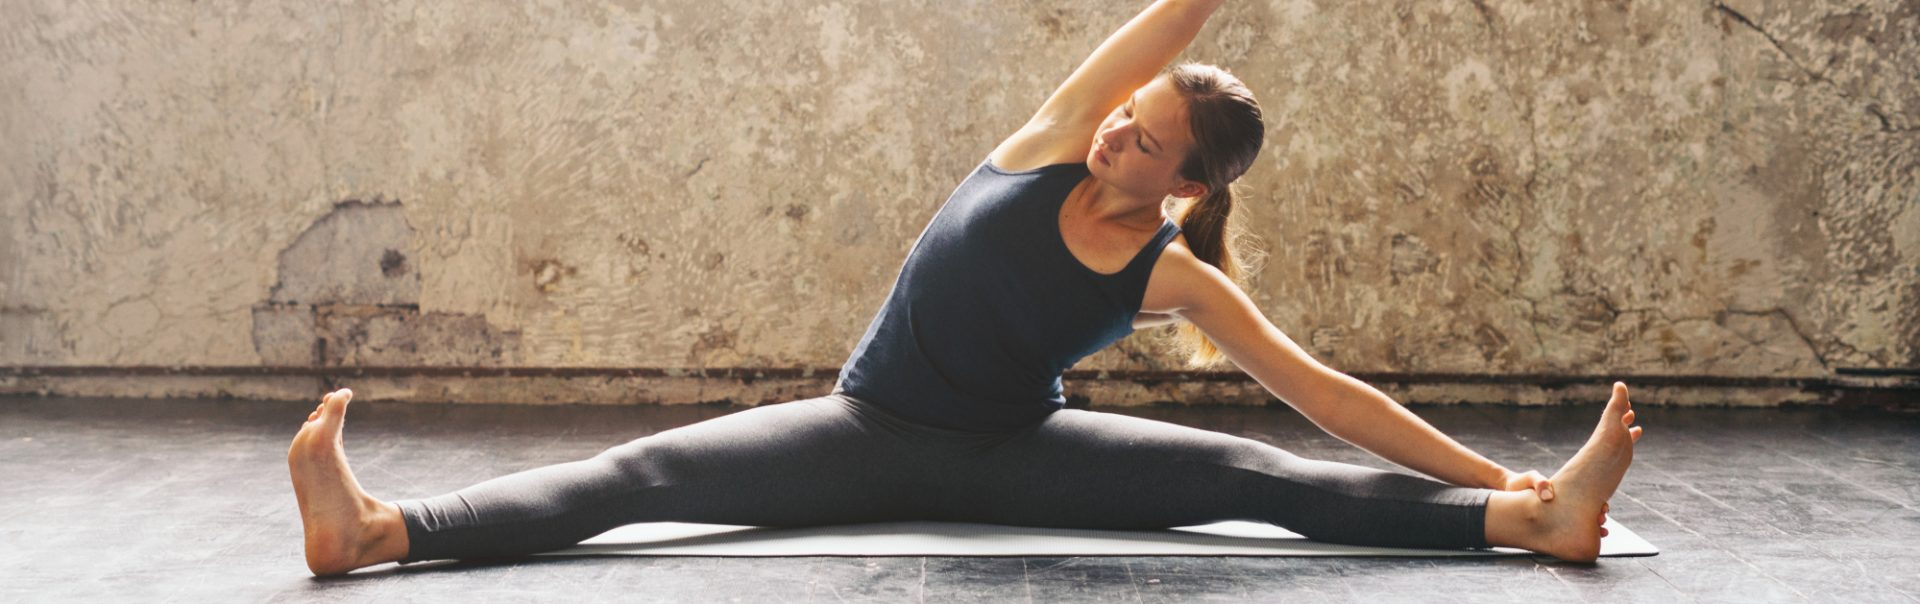 A woman seated on a yoga mat stretching to the side